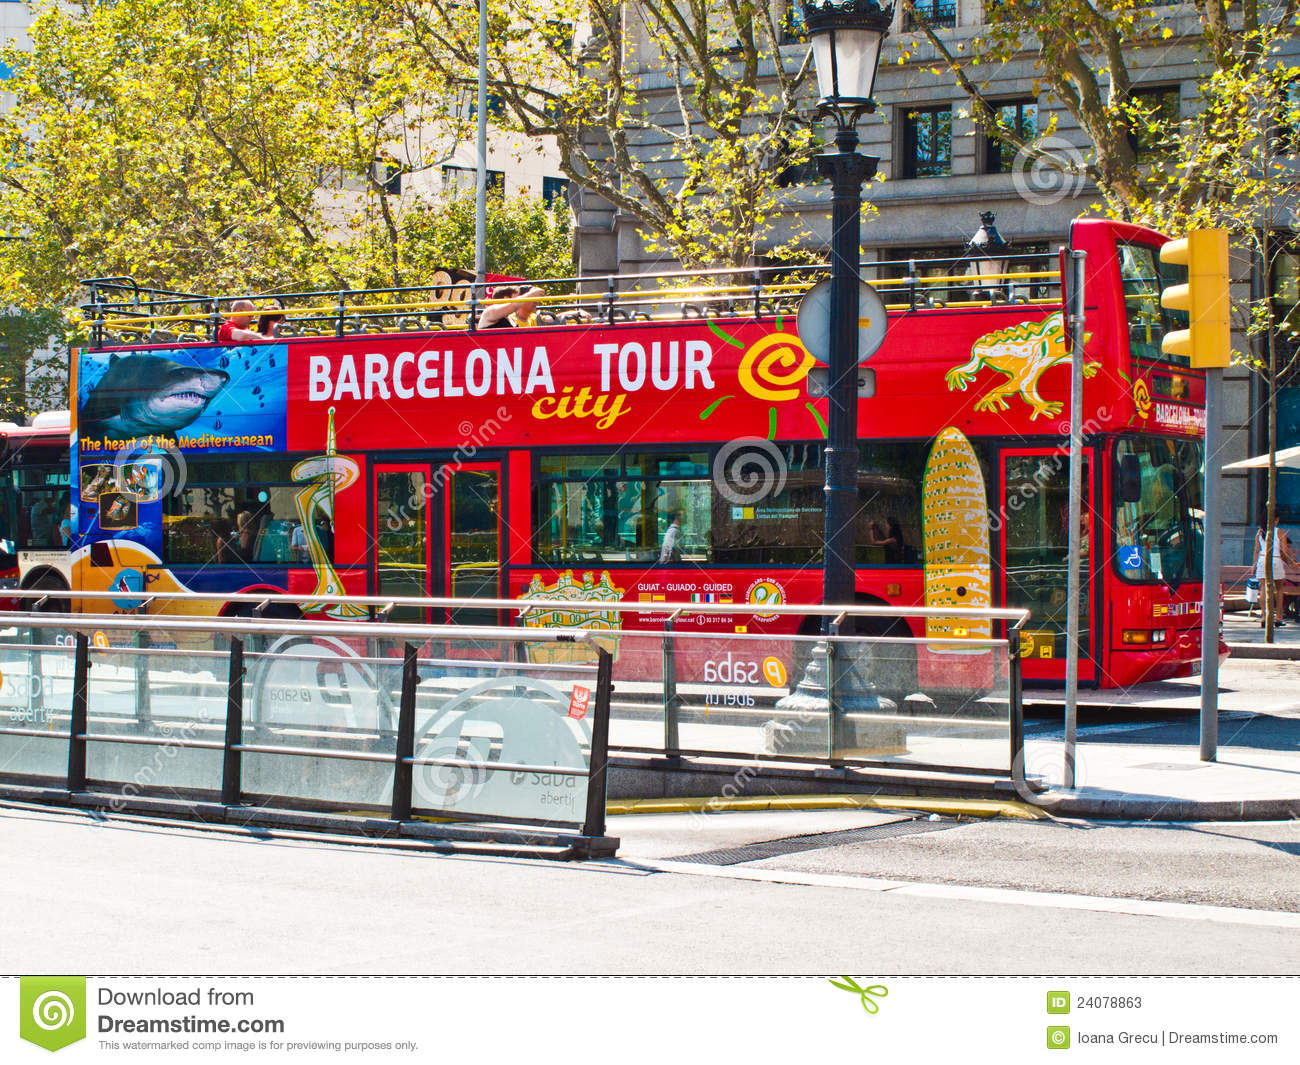 Barcelona bus tours coupons